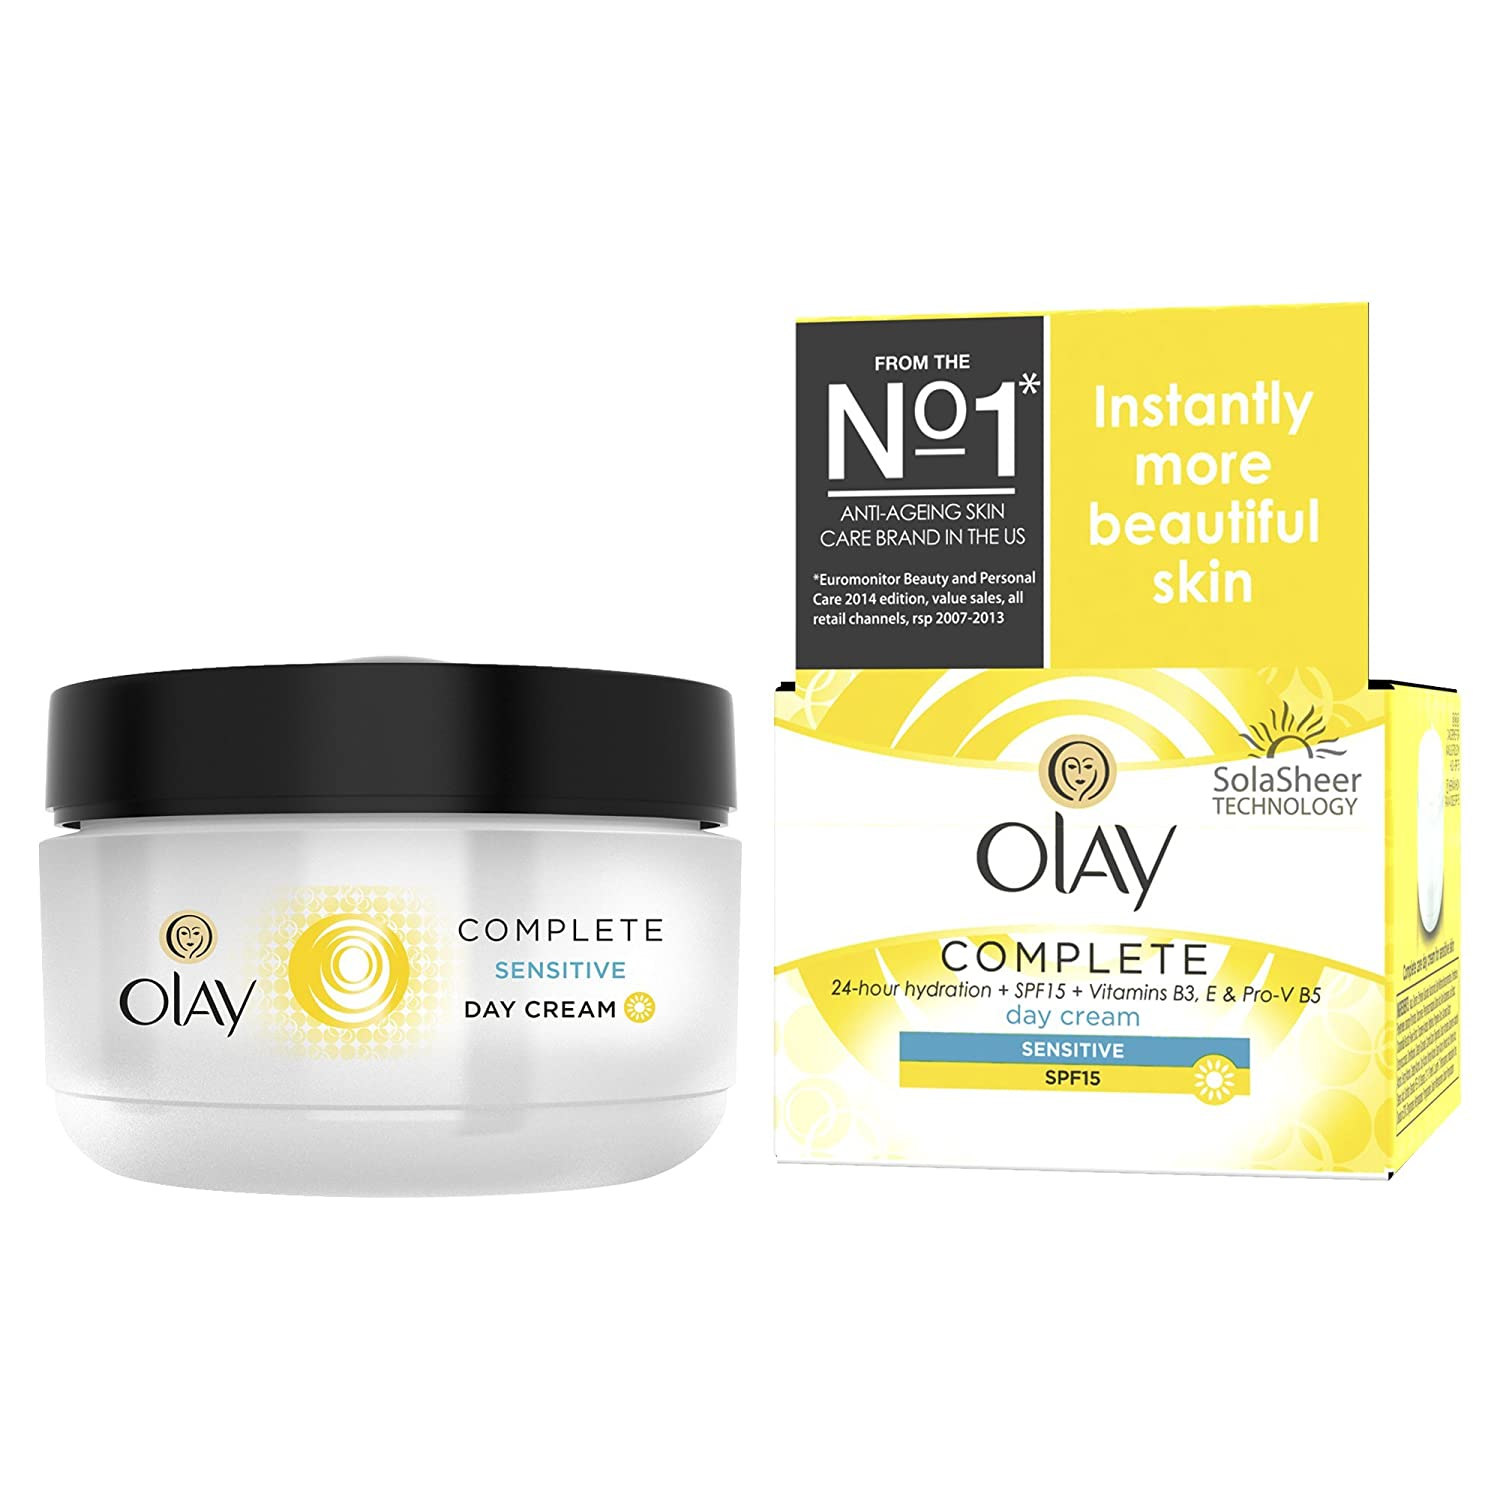 Olay SPF15 Complete 3 in one Moisturiser Day Cream Sensitive, 50 ml Procter & Gamble 100766767